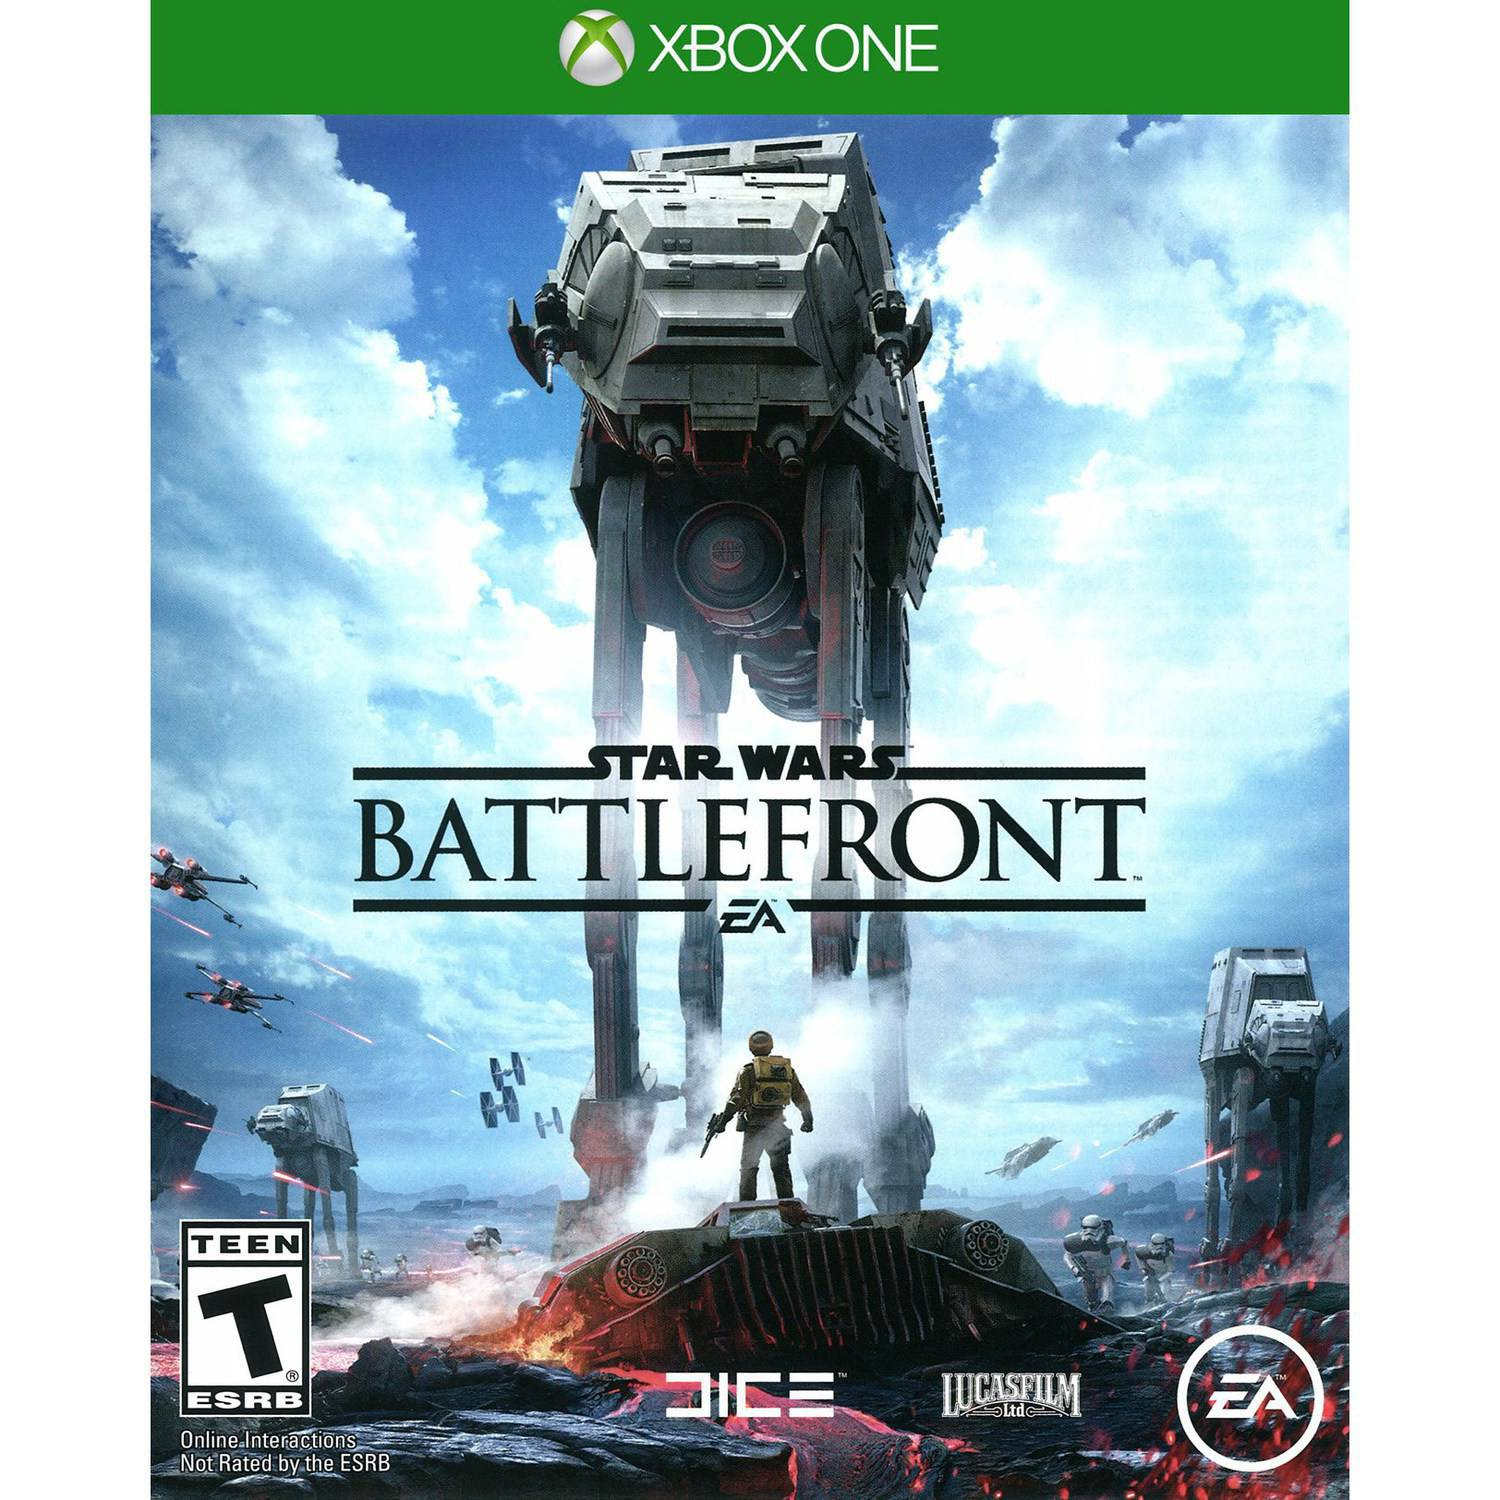 Star Wars Battlefront (Xbox One) - Pre-Owned